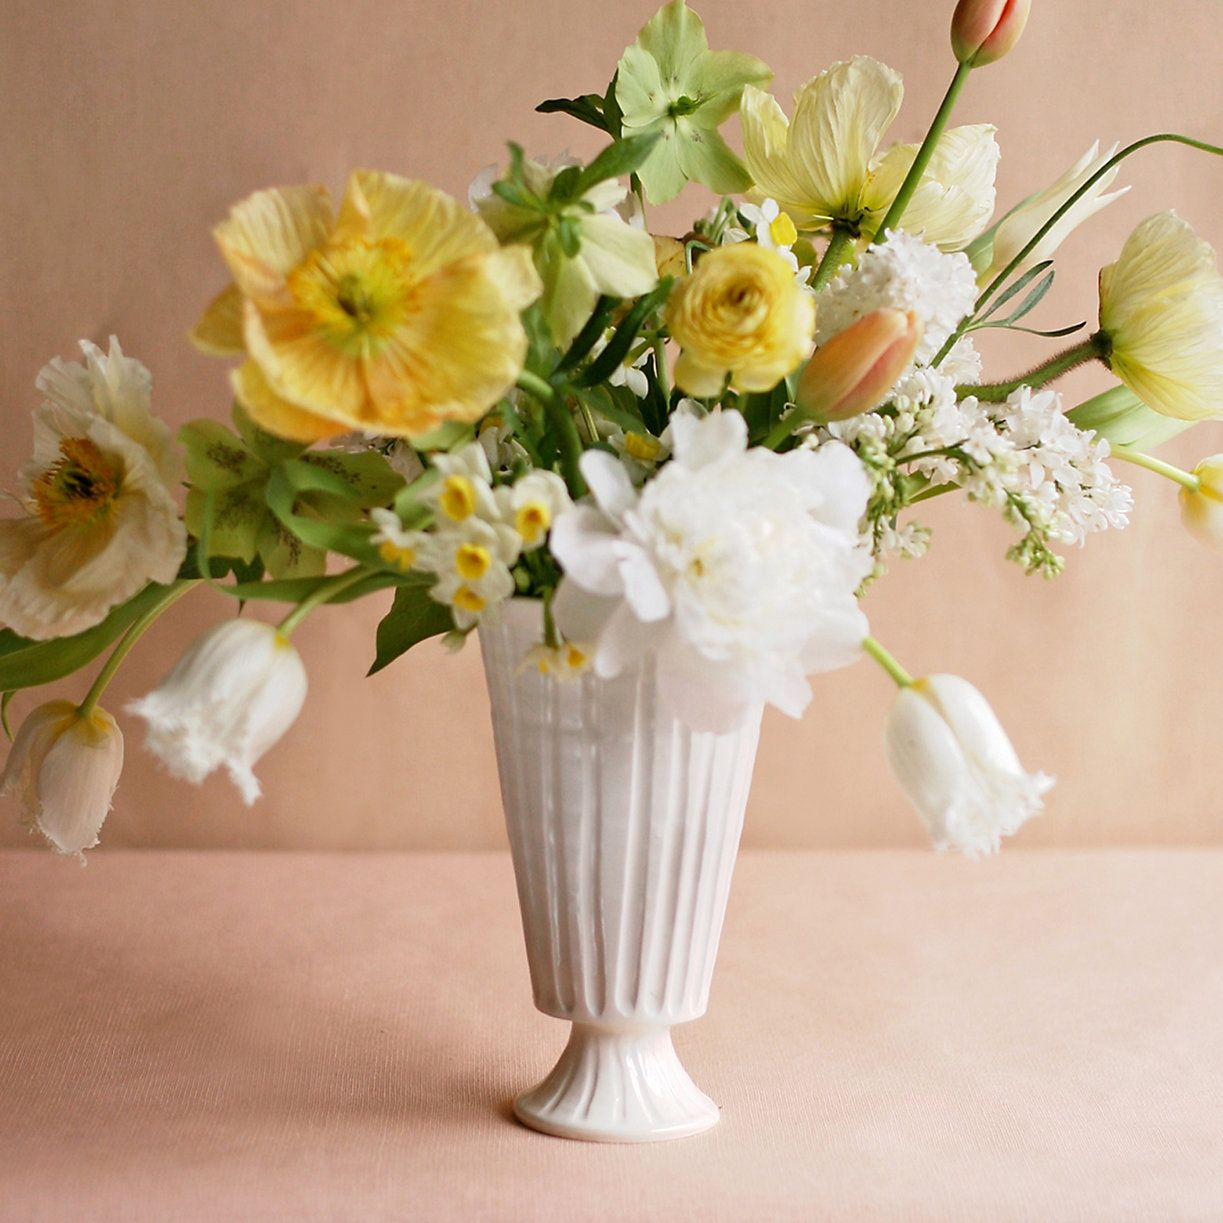 Beautiful Flower Vases Frances Palmer Epoch Vase Adorable Charming Cute Pretty